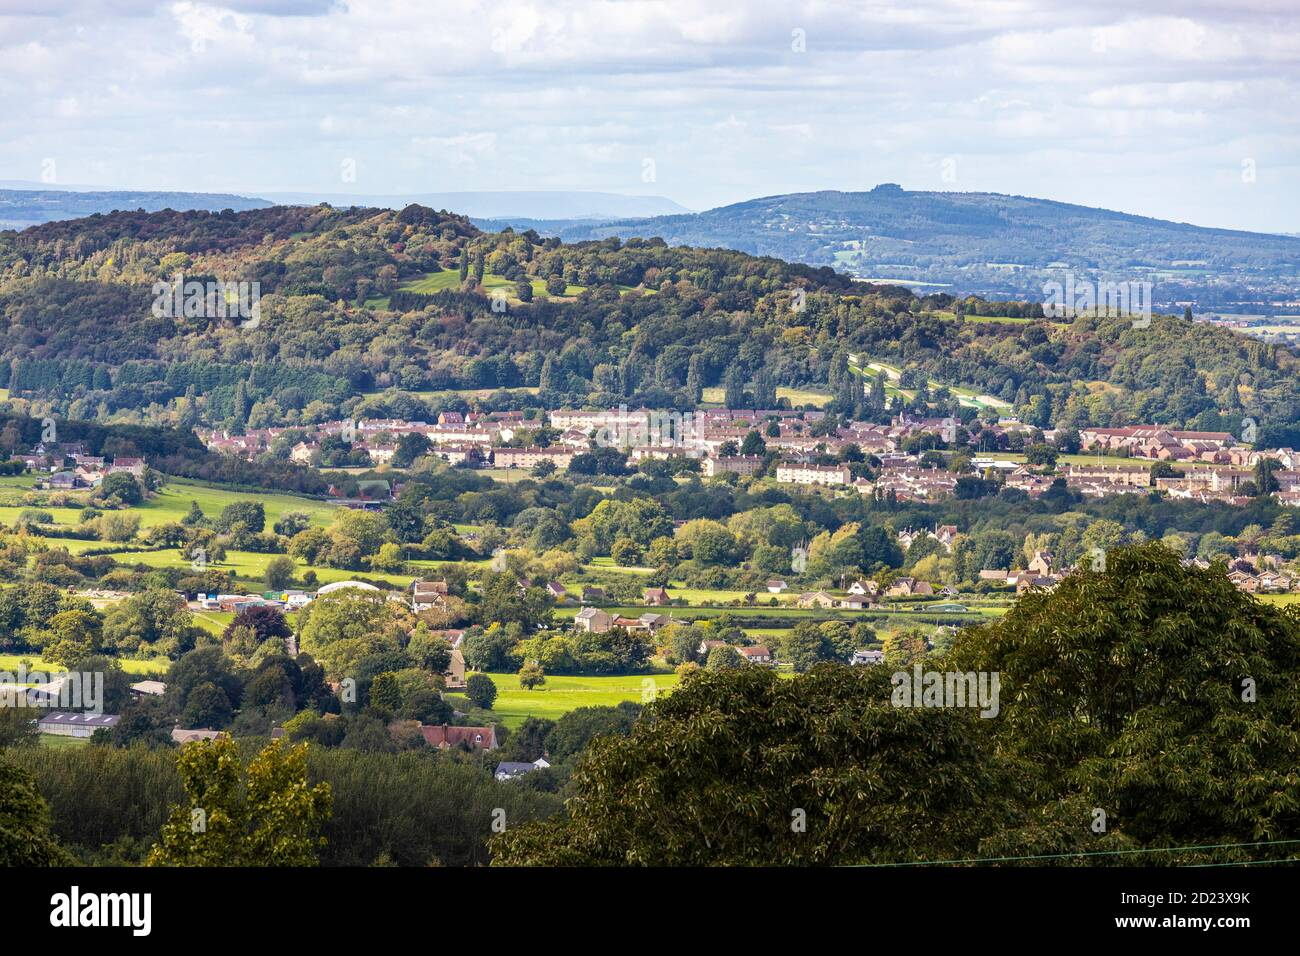 Matson housing estates on the slopes of Robinswood Hill with May Hill in the background viewed from Prinknash near Upton St Leonards, Gloucestershire Stock Photo